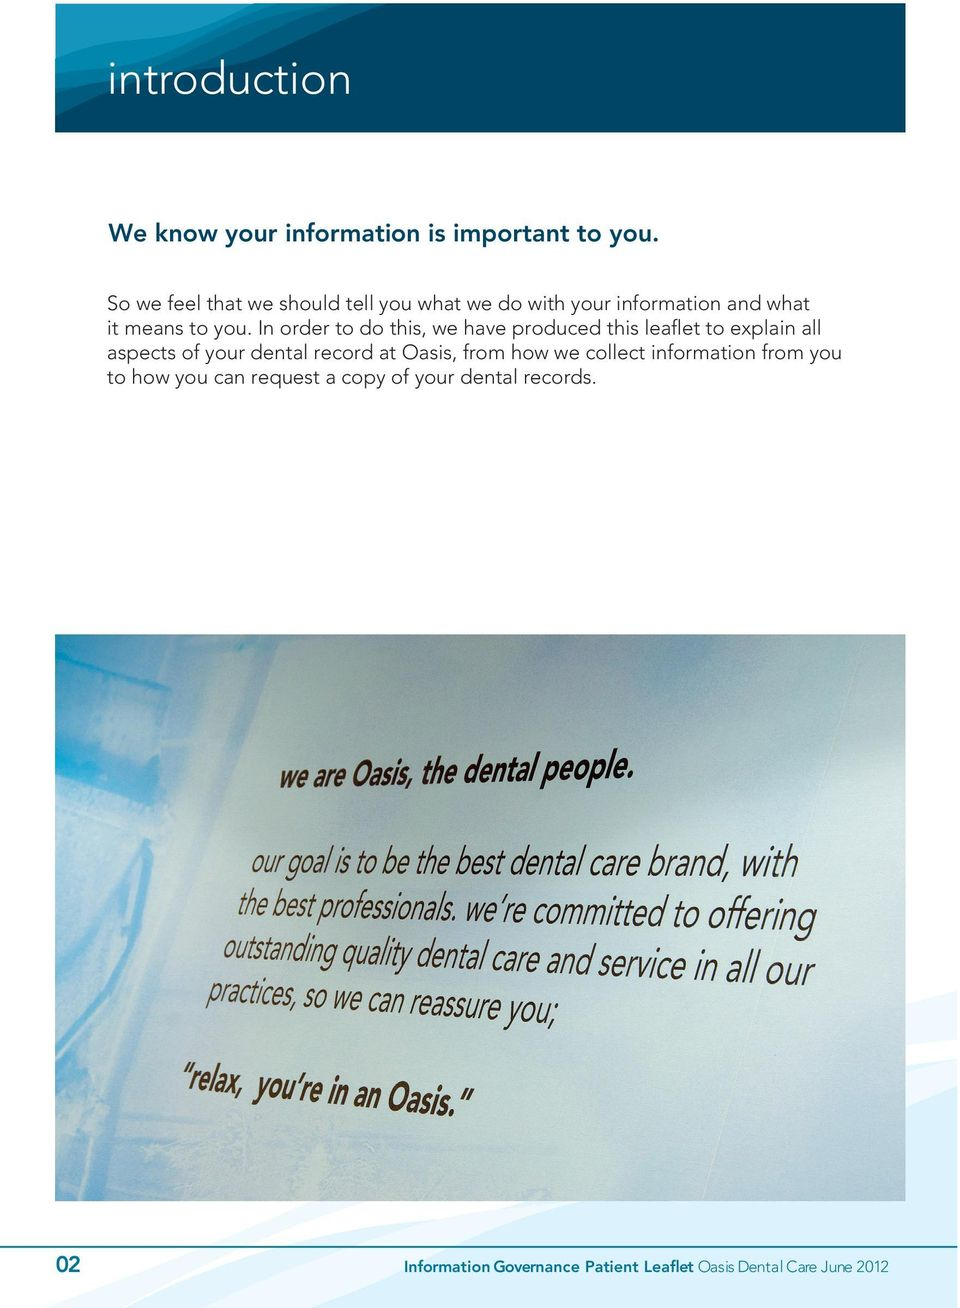 In order to do this, we have produced this leaflet to explain all aspects of your dental record at Oasis,